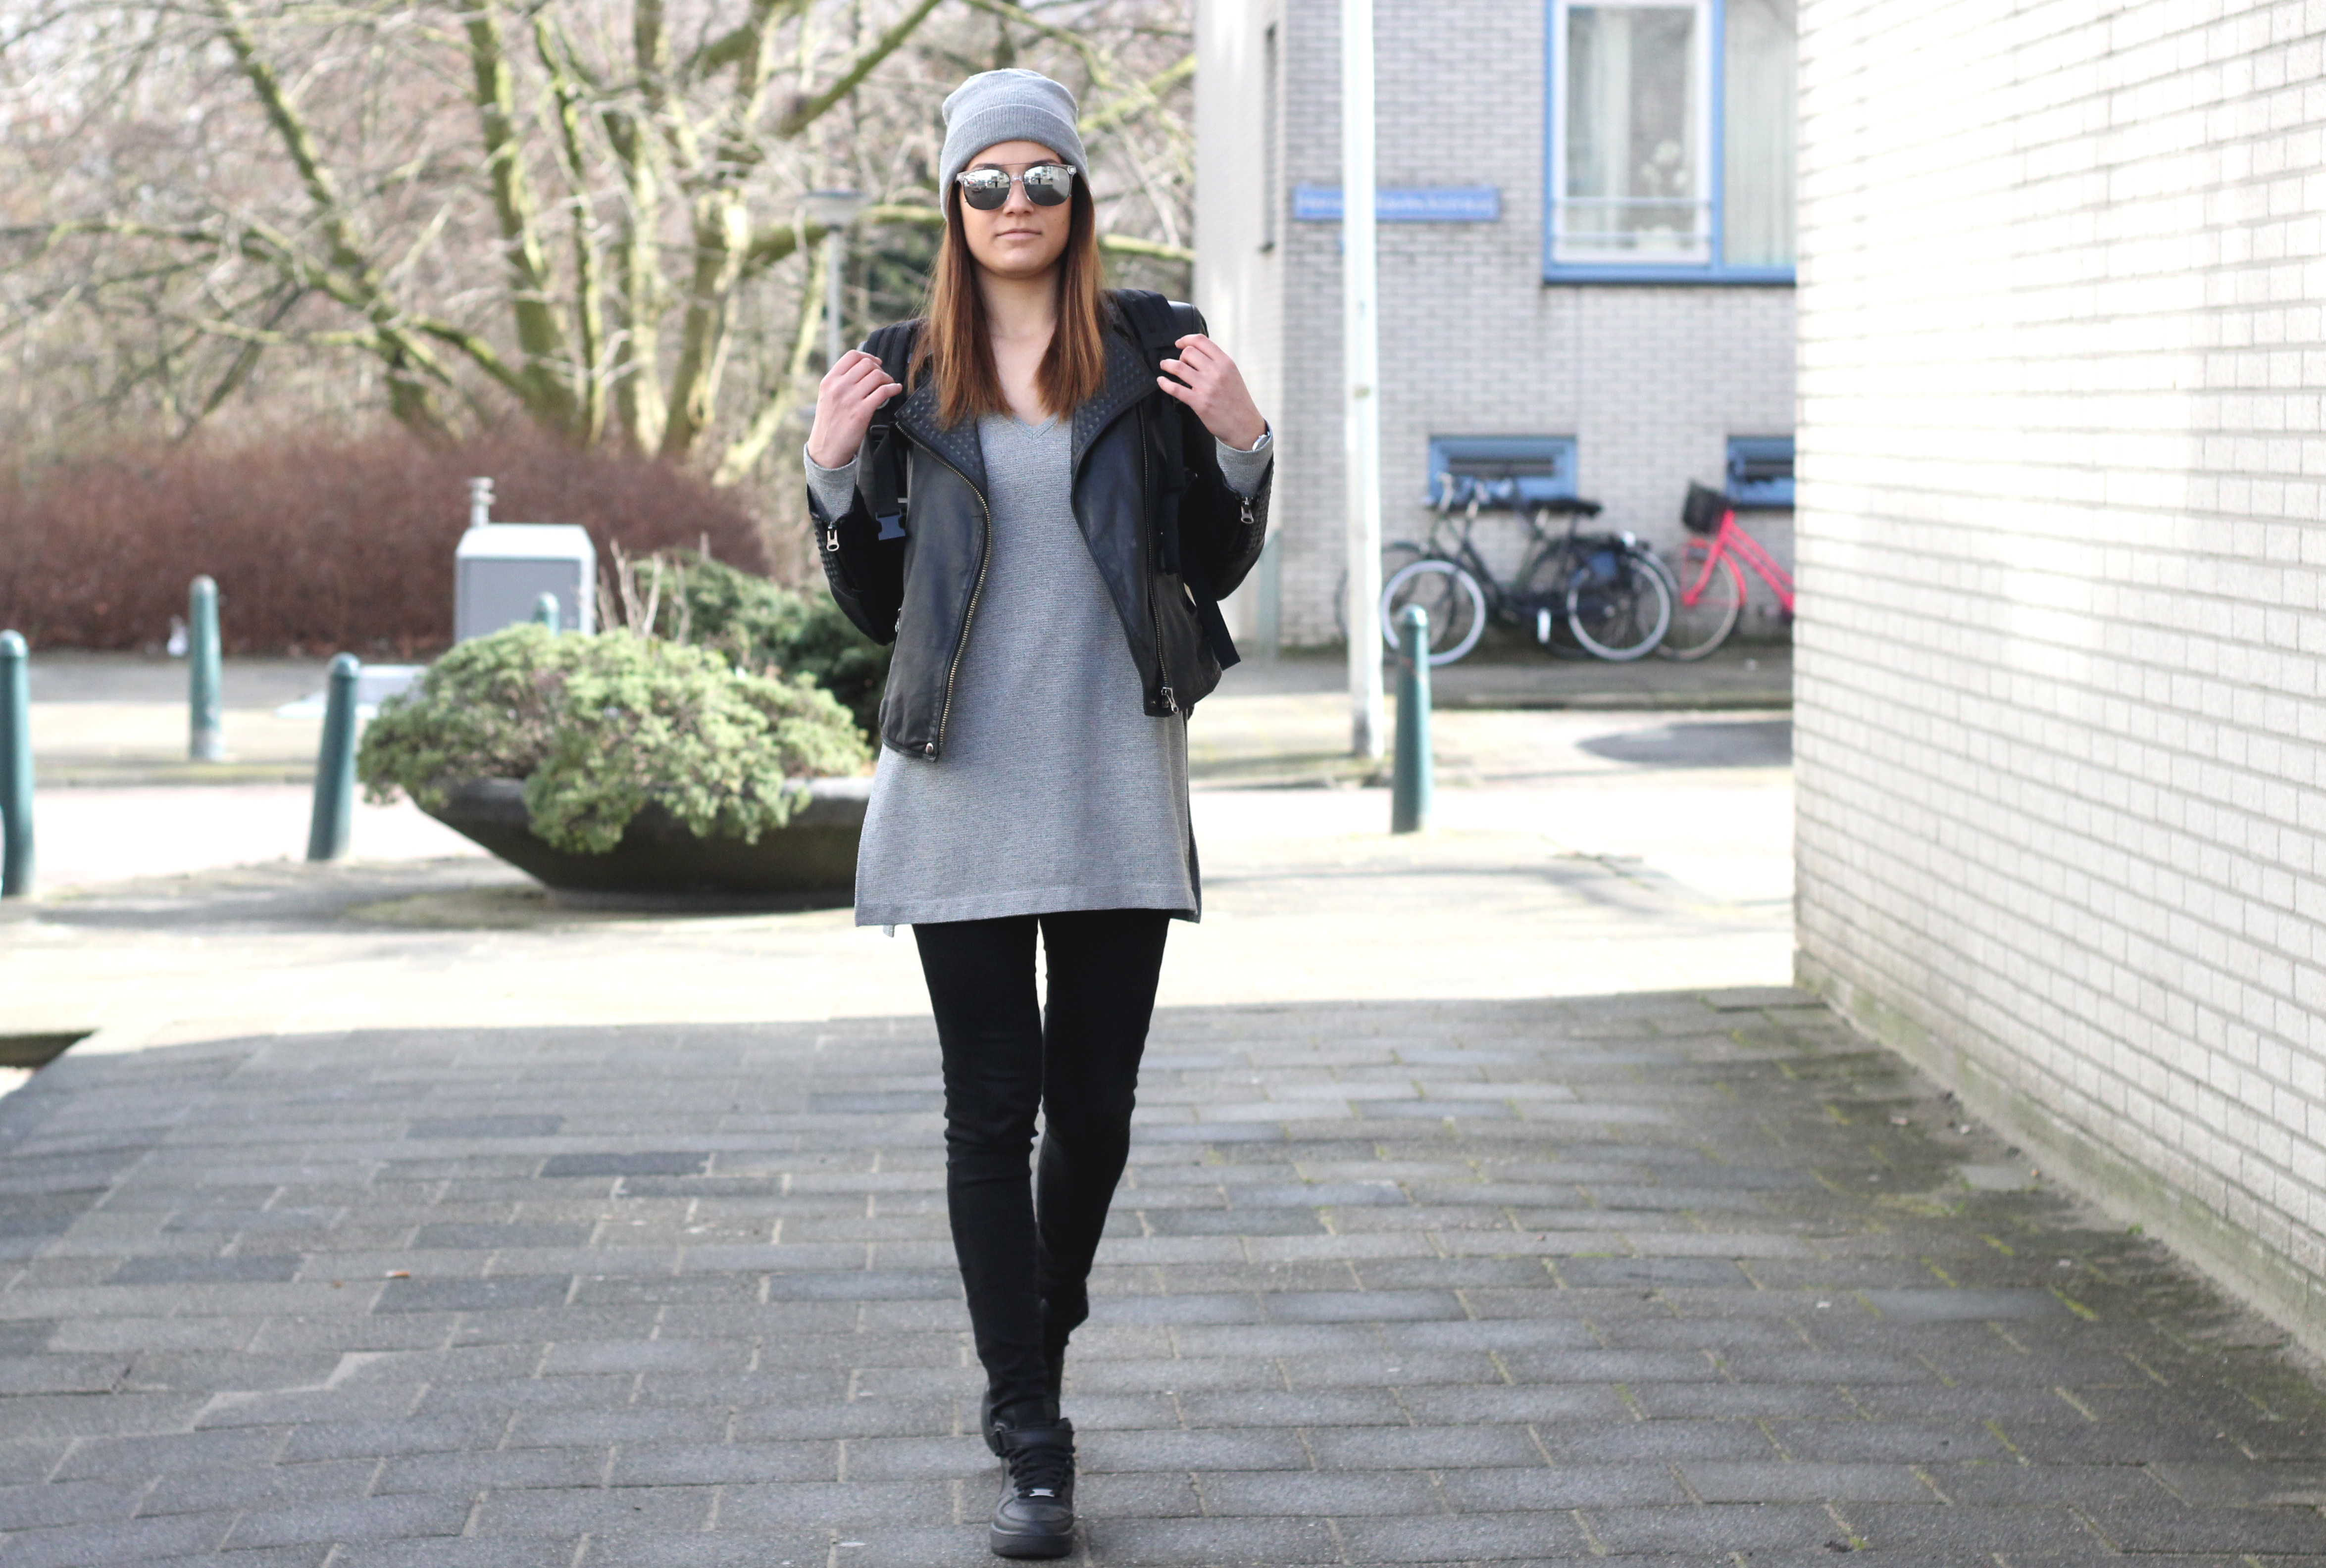 outfit post monochrome minimalist polette eyewear fernandez nike air force style bulgarian fashion blogger quite a looker blog www.quitealooker.com